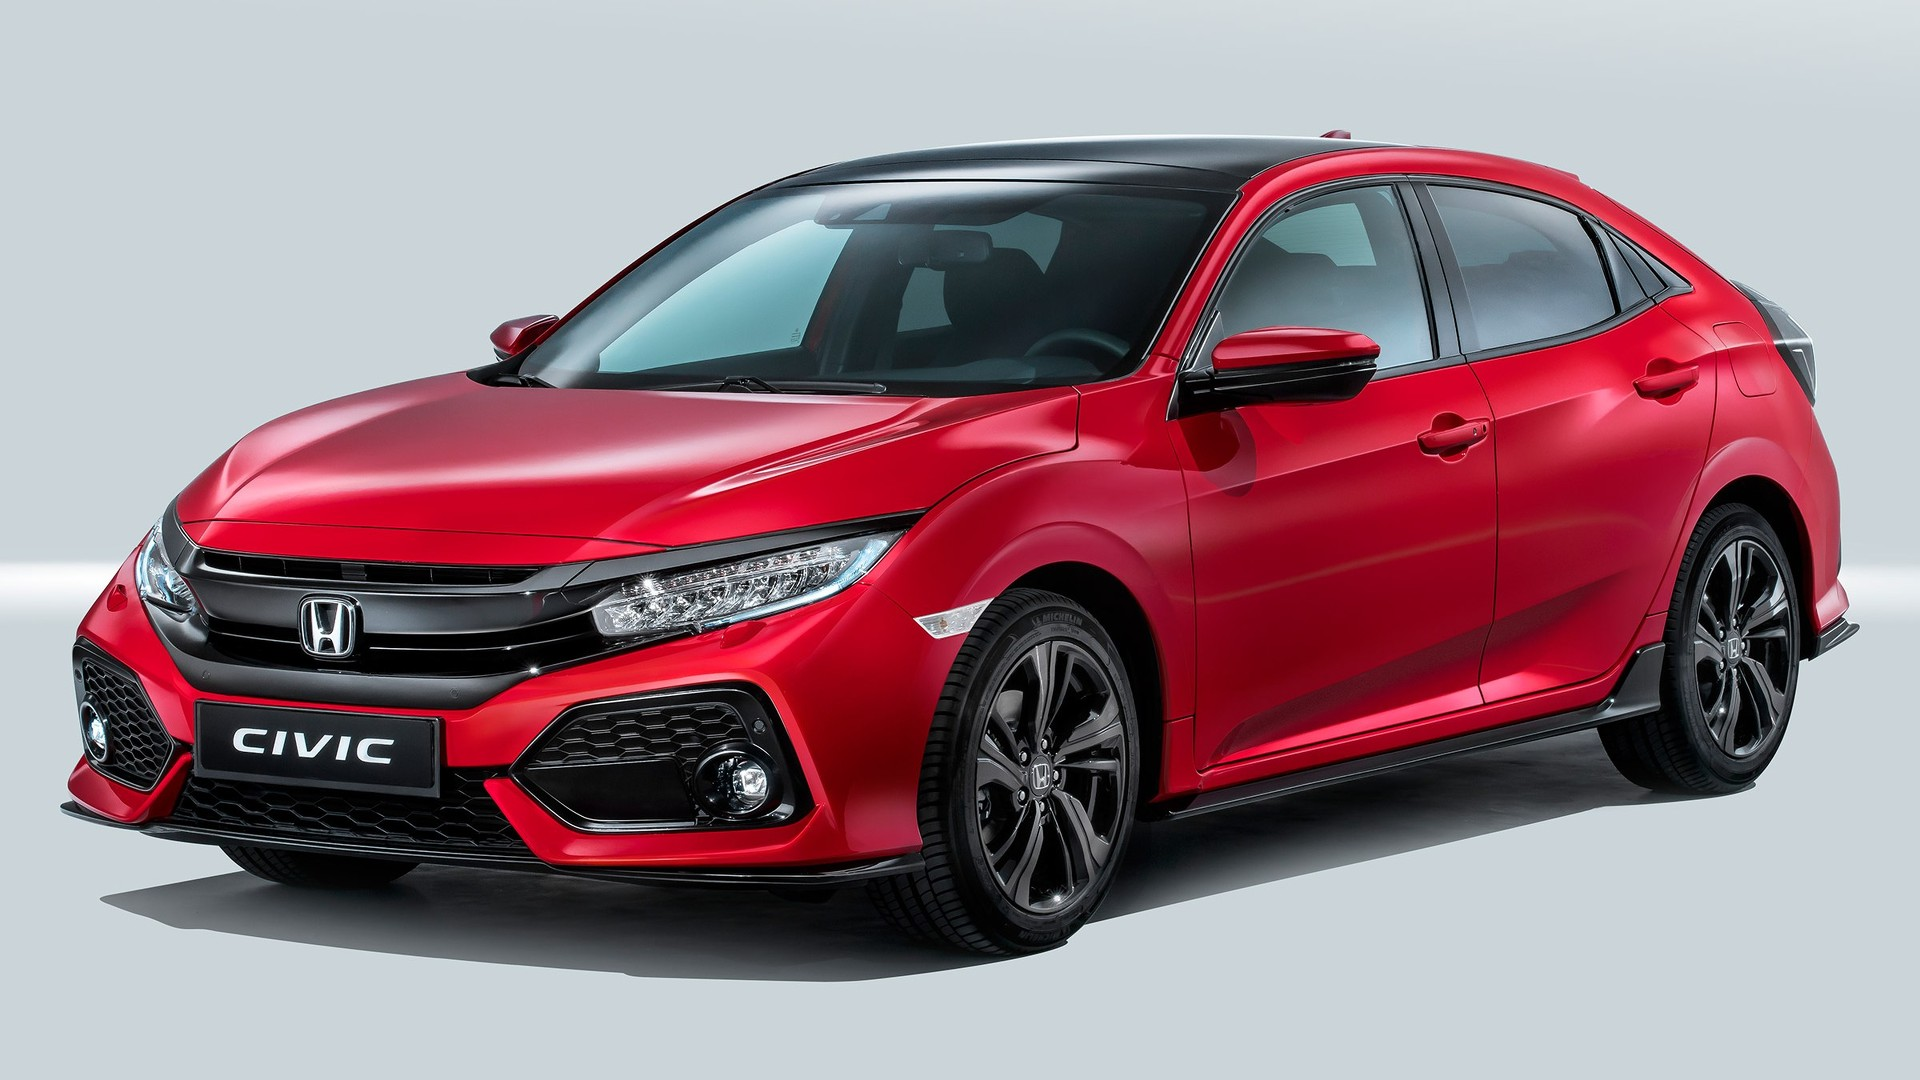 Новая генерация Honda Civic «завоевала авторынки» 1